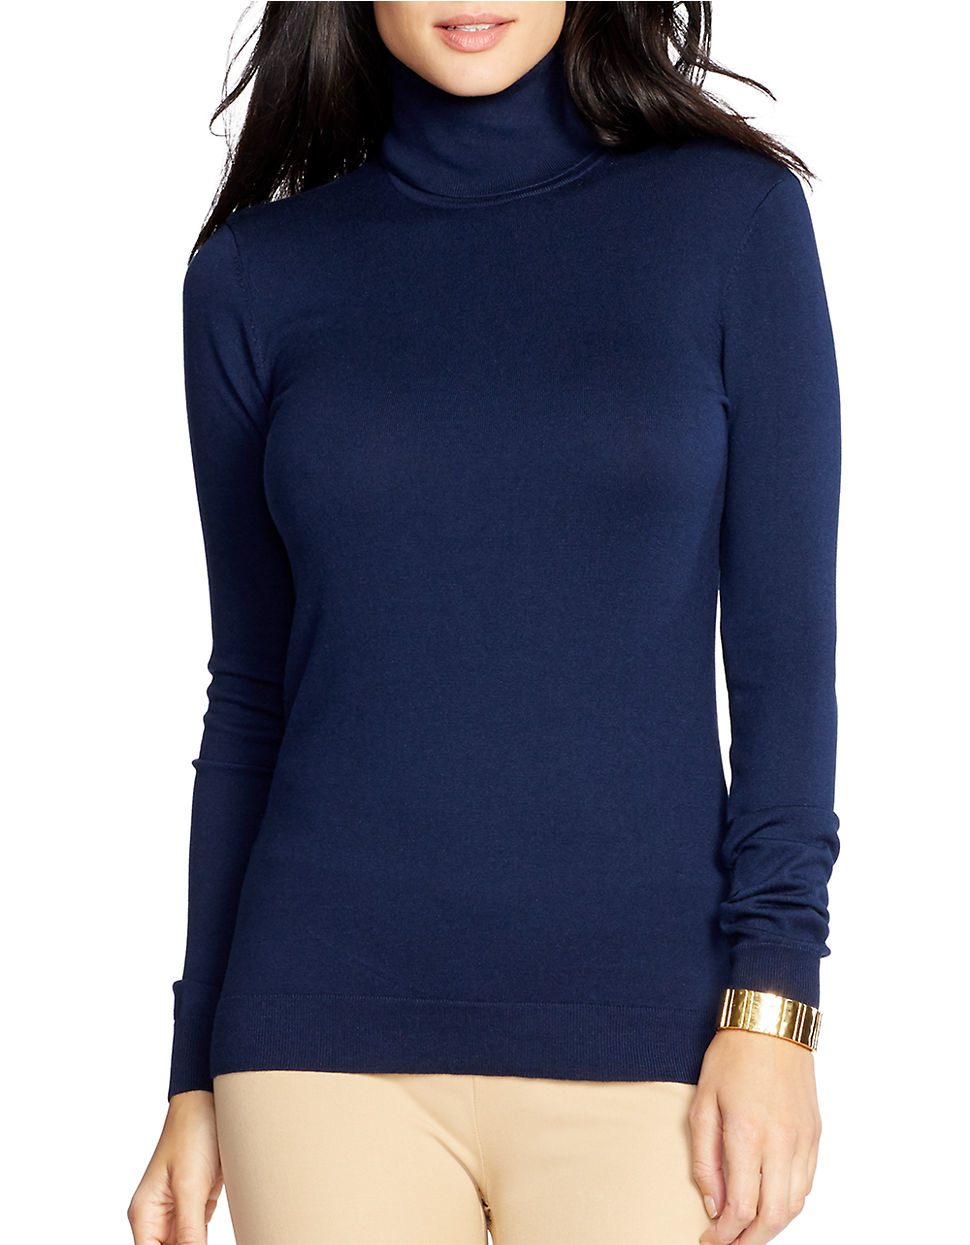 Lauren by ralph lauren Silk-cotton Turtleneck Sweater in Blue | Lyst